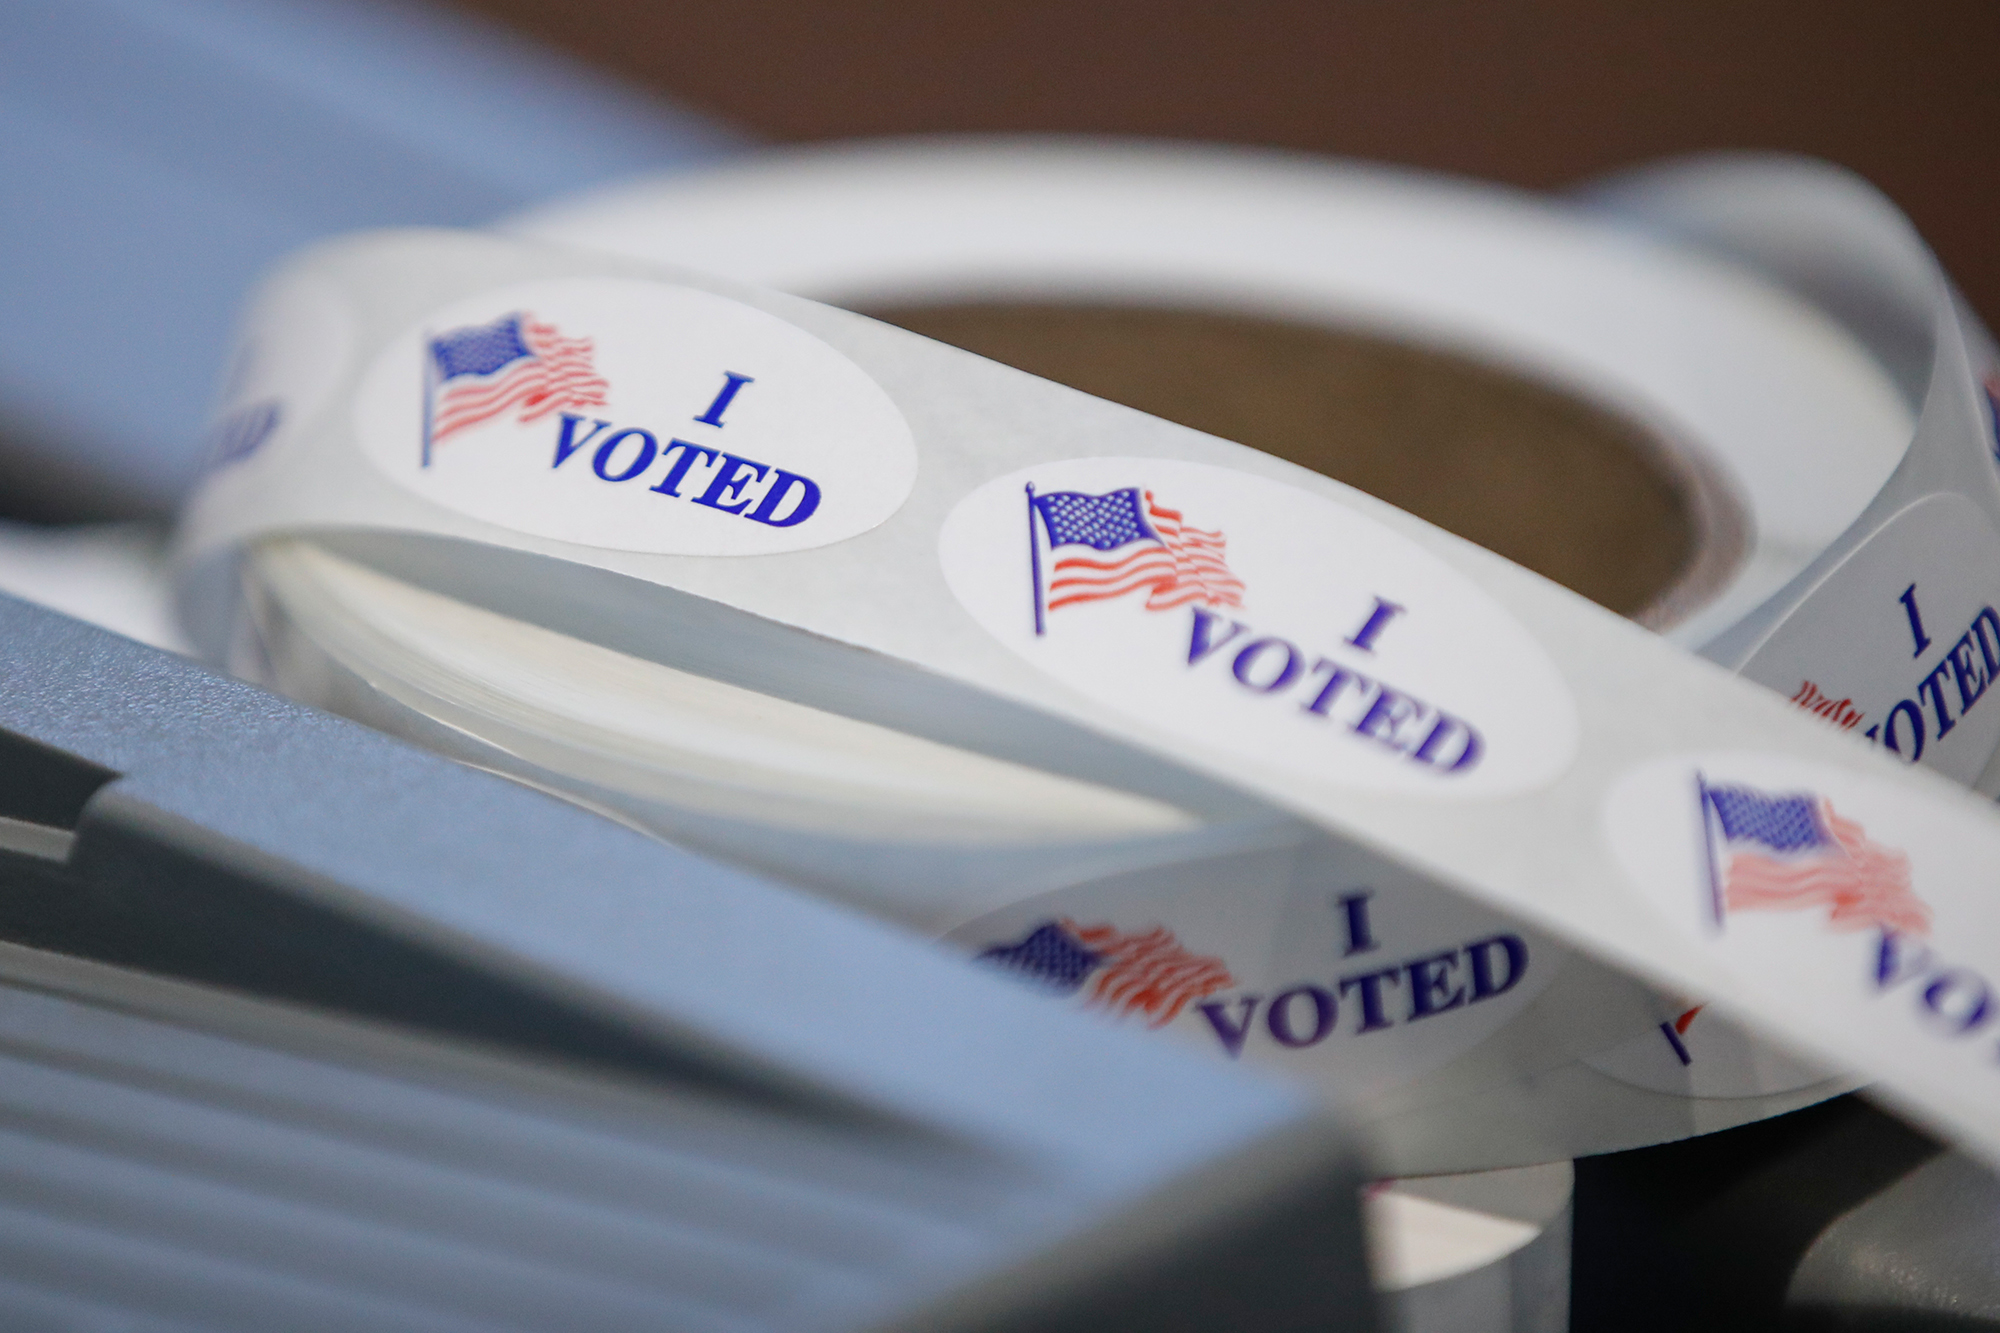 Thousands call Pennsylvania county about requested ballots that never arrived